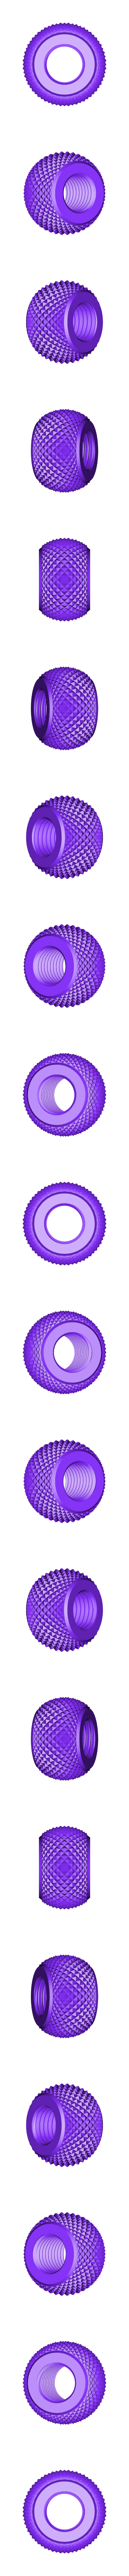 yet_another_knurling_nut.stl Download free STL file Yet another knurling bolt and nut • 3D printer object, akira3dp0